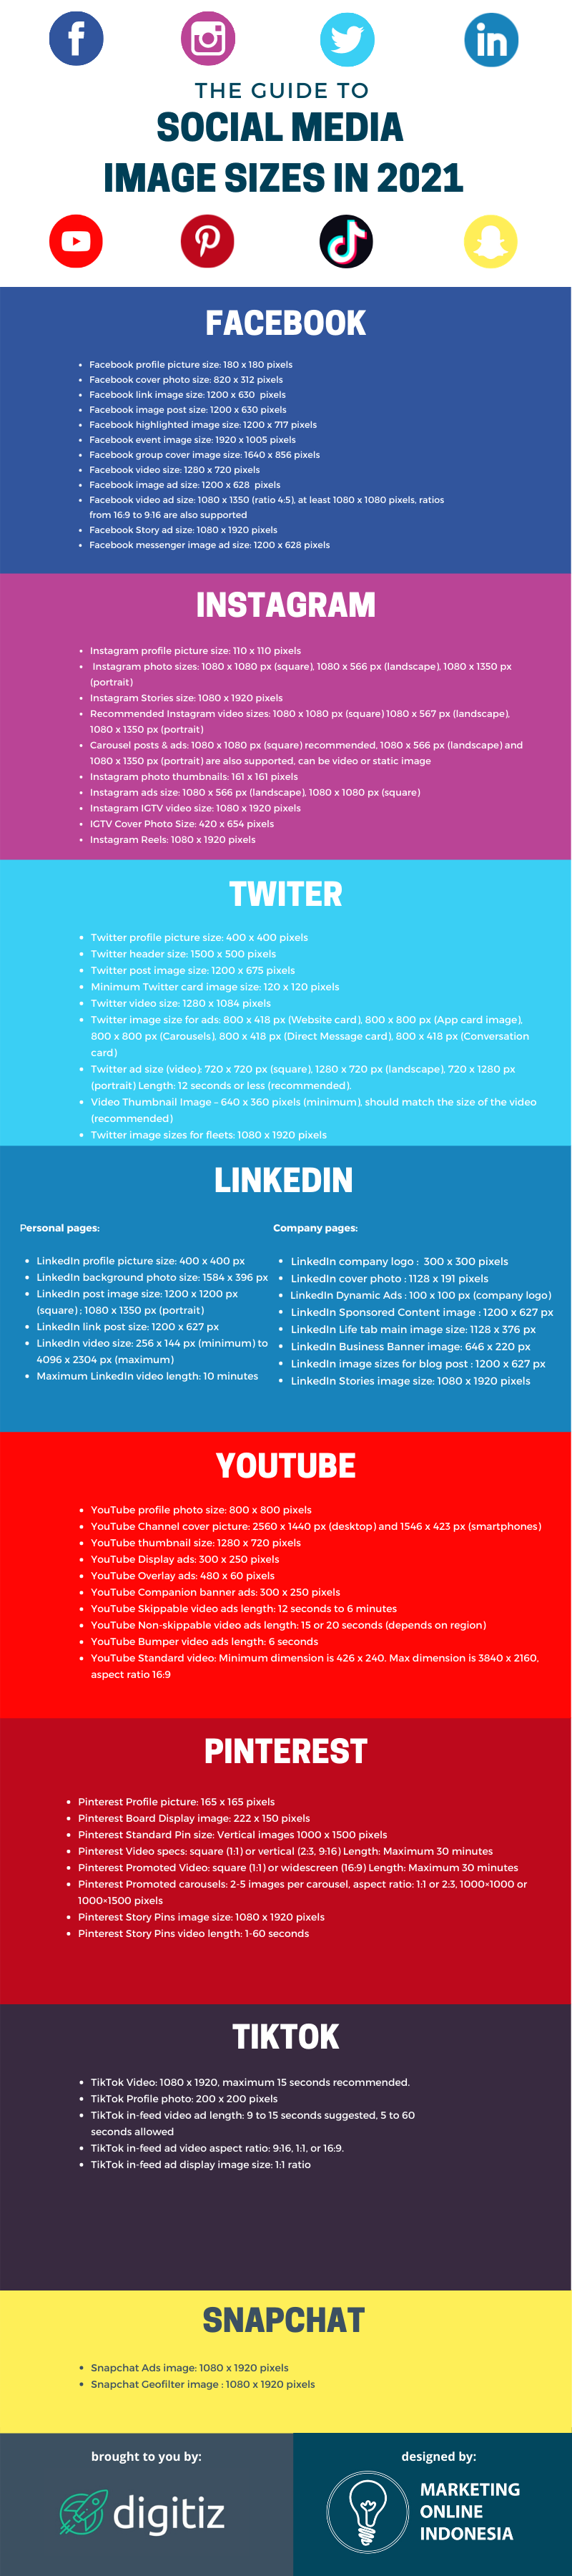 guide to social media image size and resolution infographic